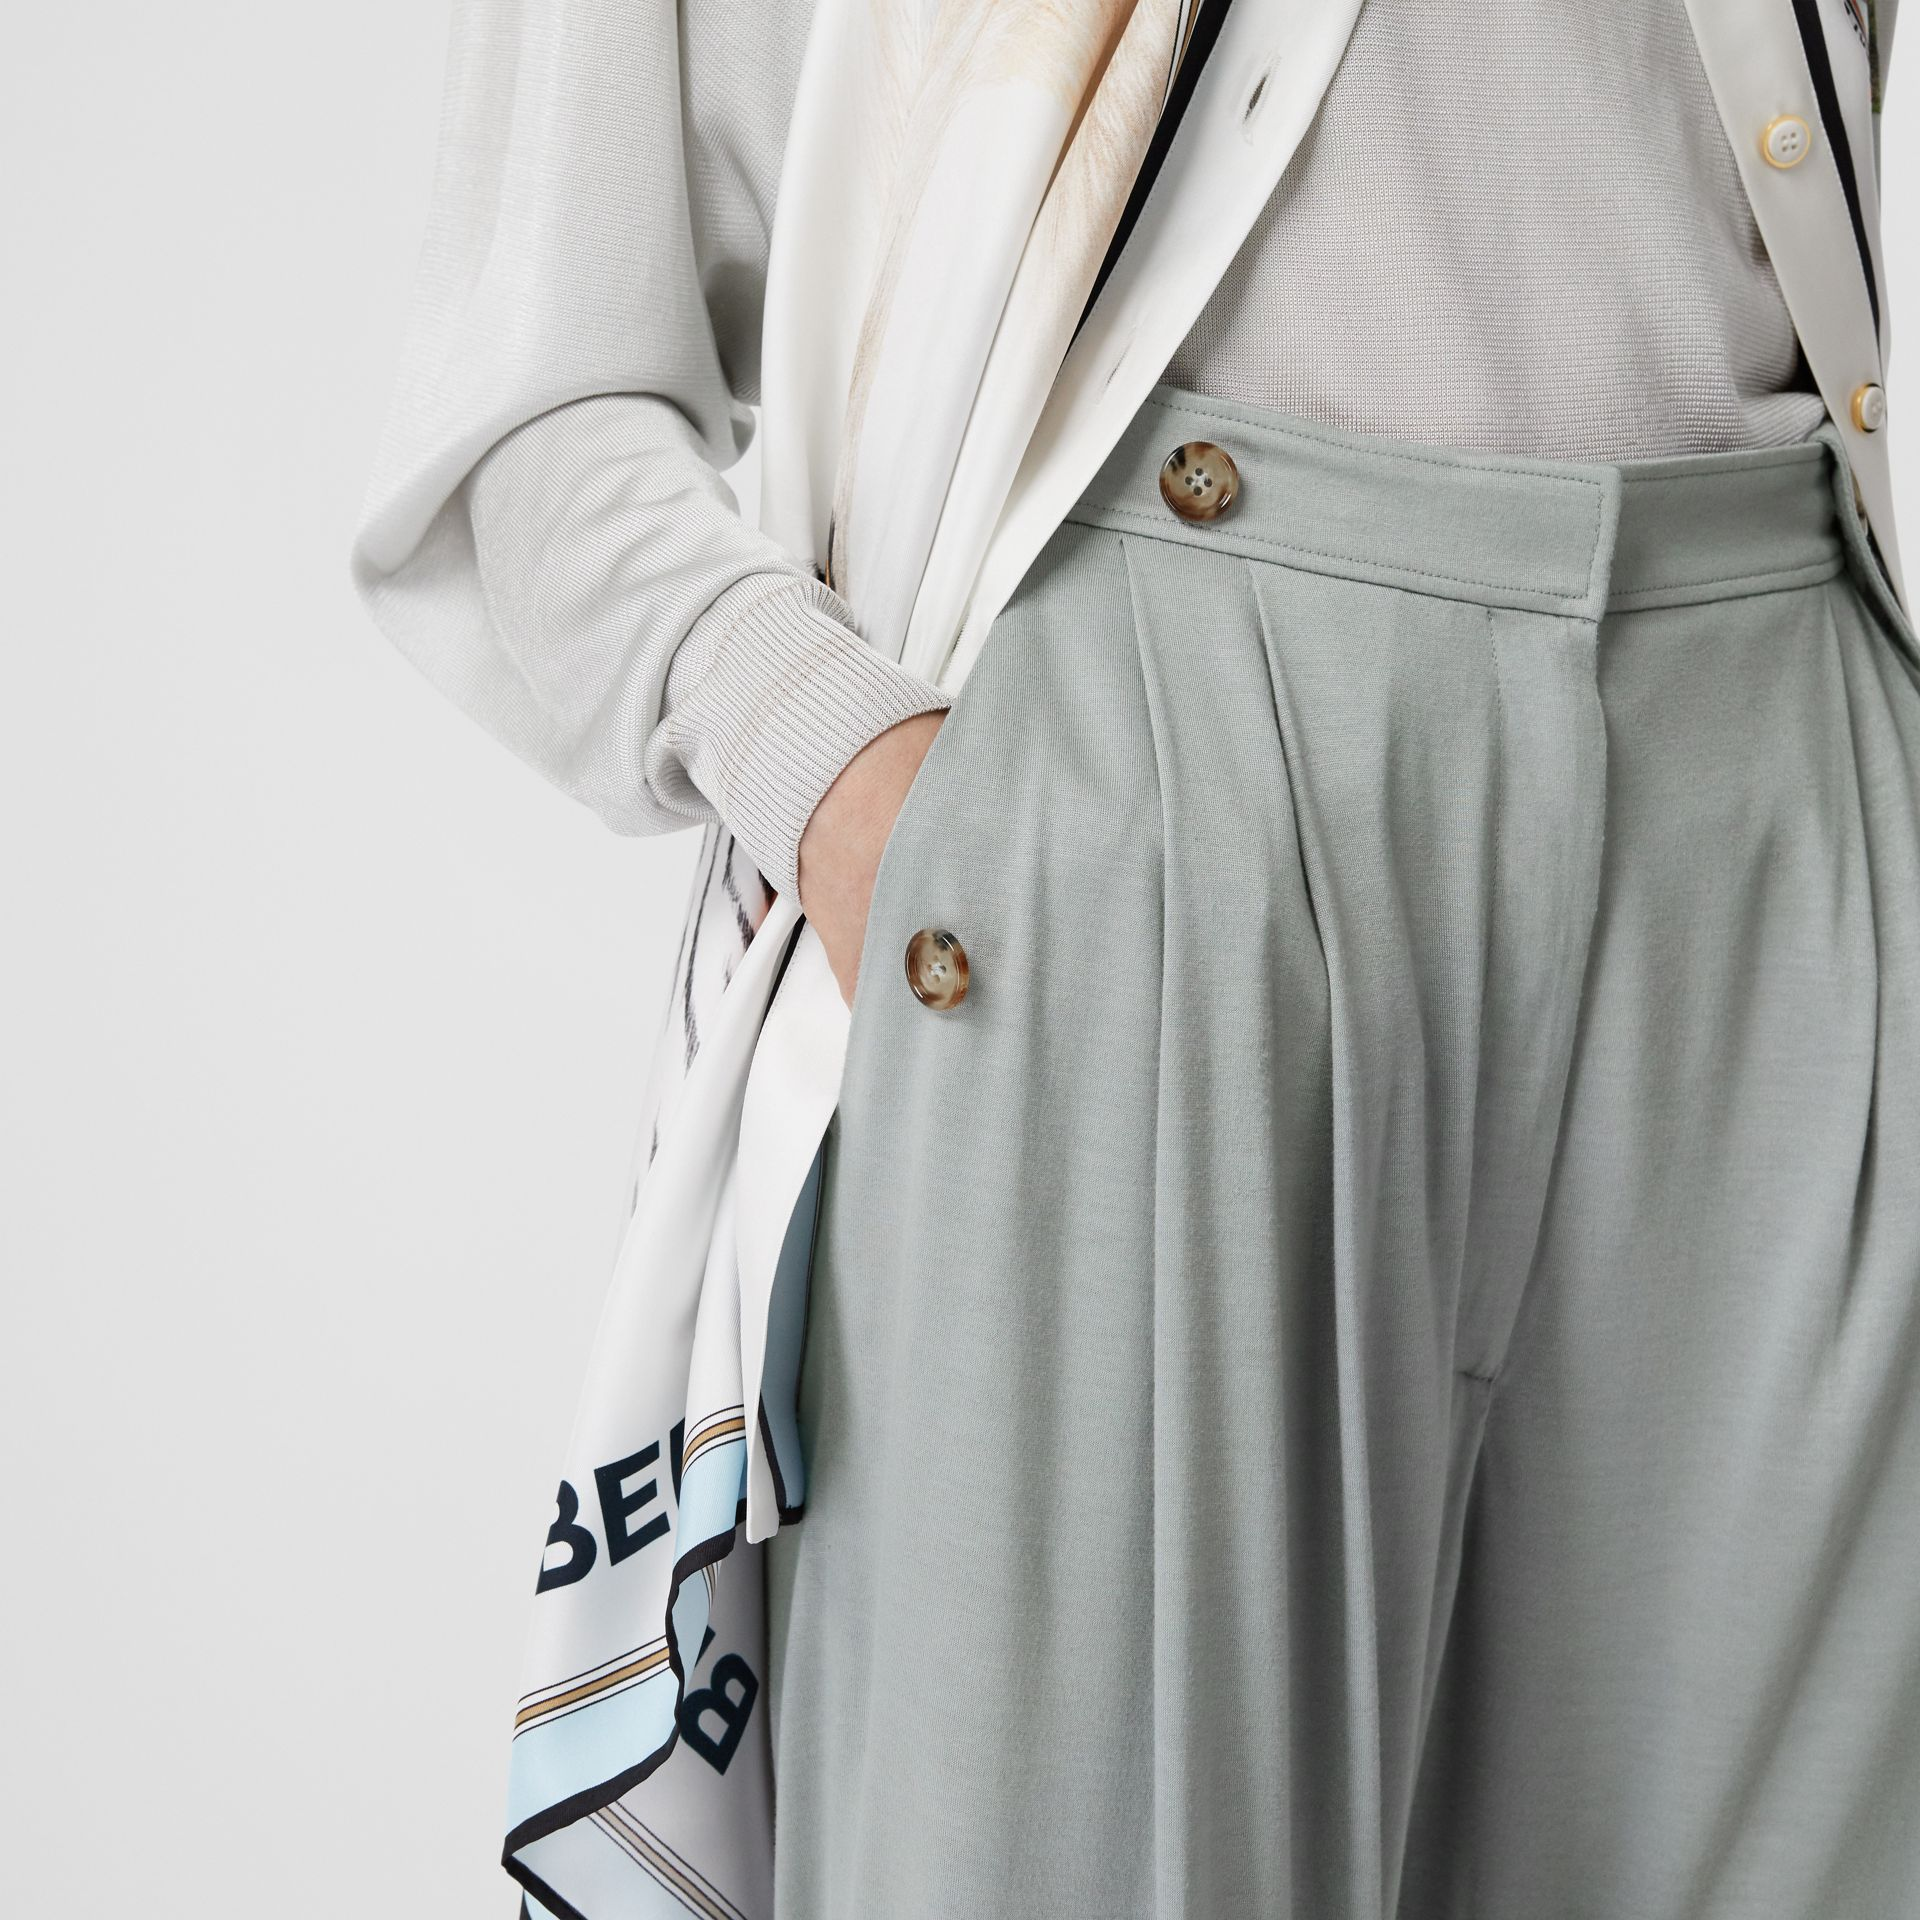 Strap Detail Jersey Tailored Trousers in Heather Melange - Women | Burberry Canada - gallery image 1